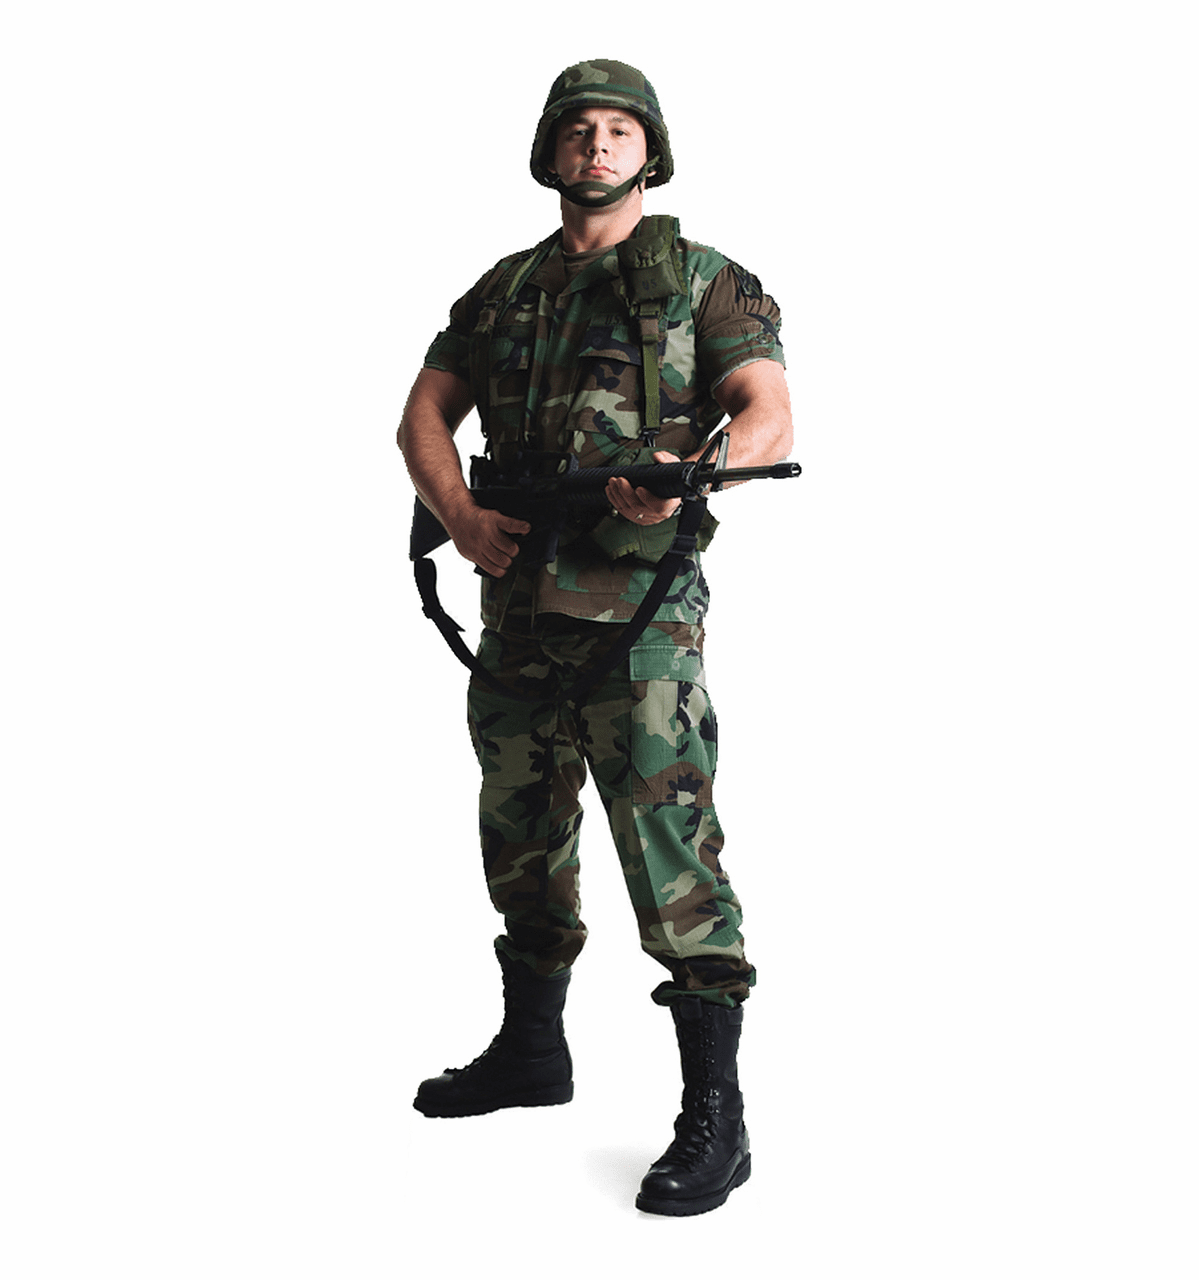 Life Size American Heros Standees